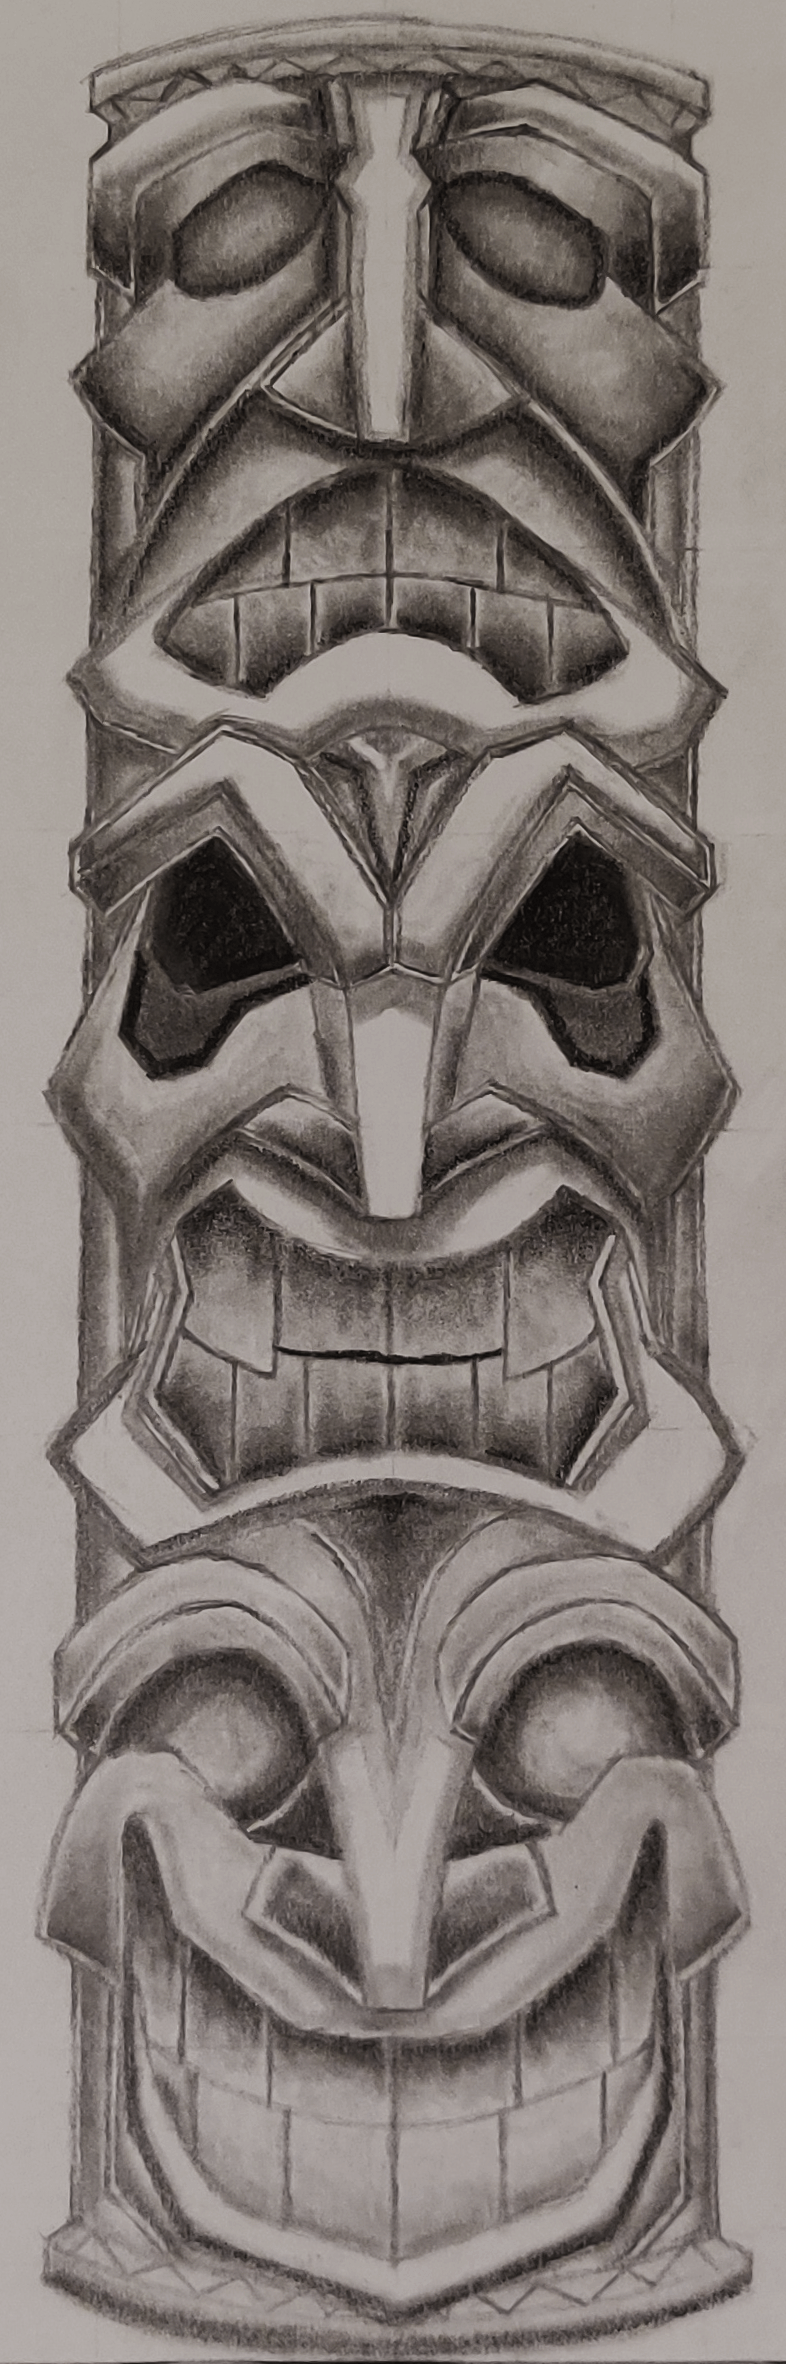 A drawing of a totem pole in pencil.